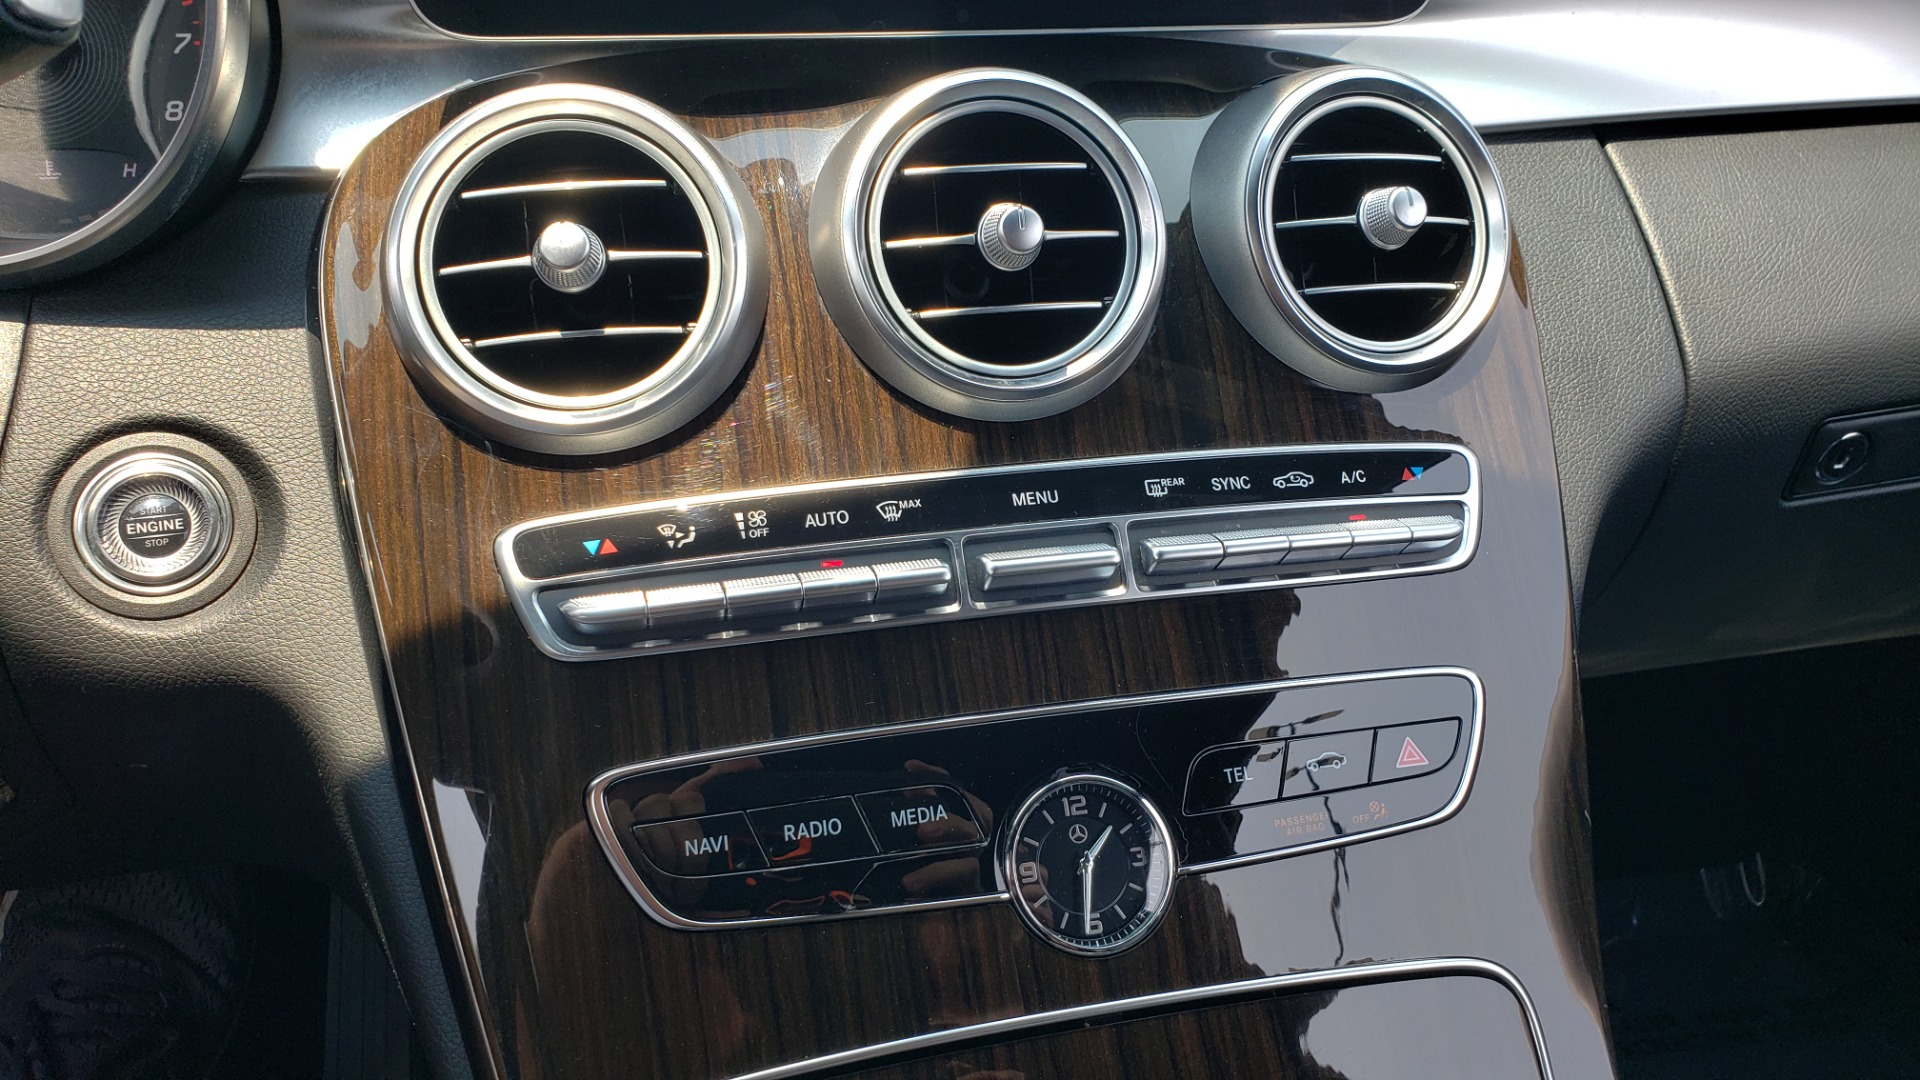 Used 2019 Mercedes-Benz C-CLASS C 300 CABRIOLET 2.0L / AUTO / NAV / HD RADIO / REARVIEW for sale $46,995 at Formula Imports in Charlotte NC 28227 55